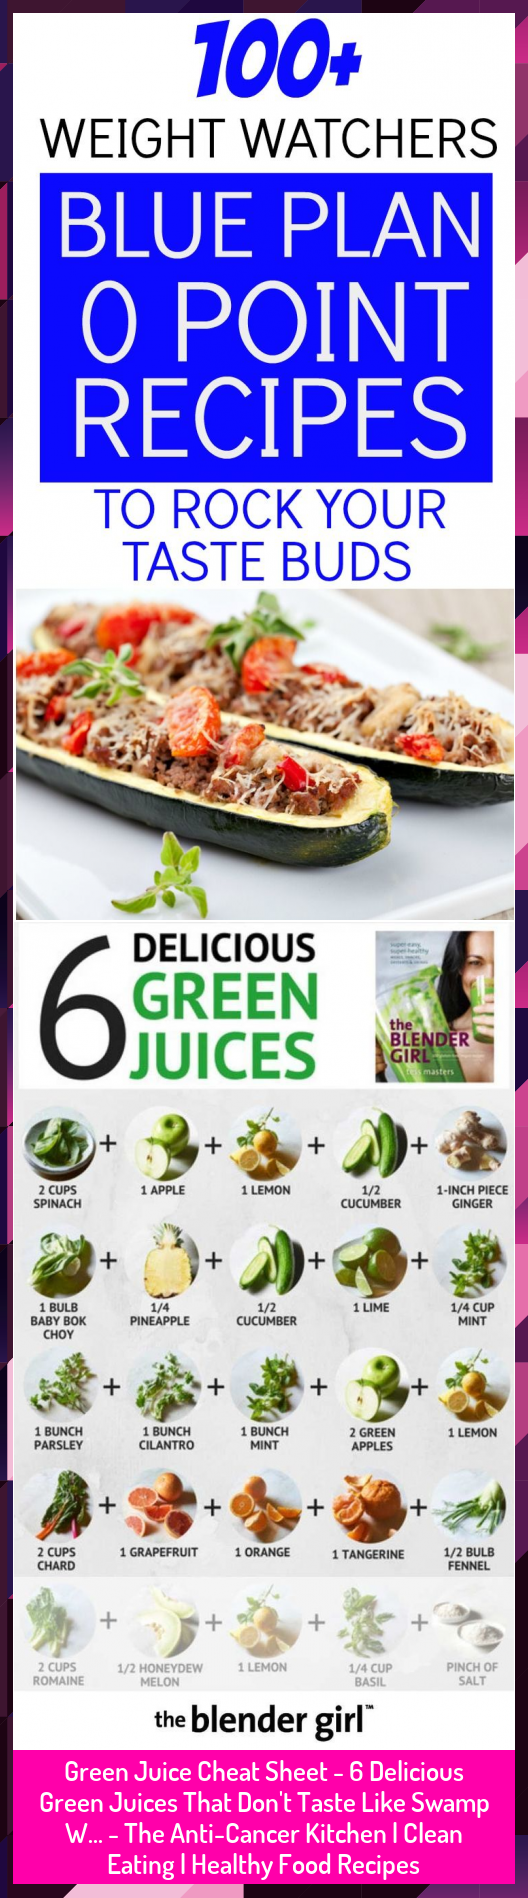 Green Juice Cheat Sheet  6 Delicious Green Juices That Dont Taste Like Swamp W  The AntiCancer Kitchen  Clean Eating  Healthy Food Recipes